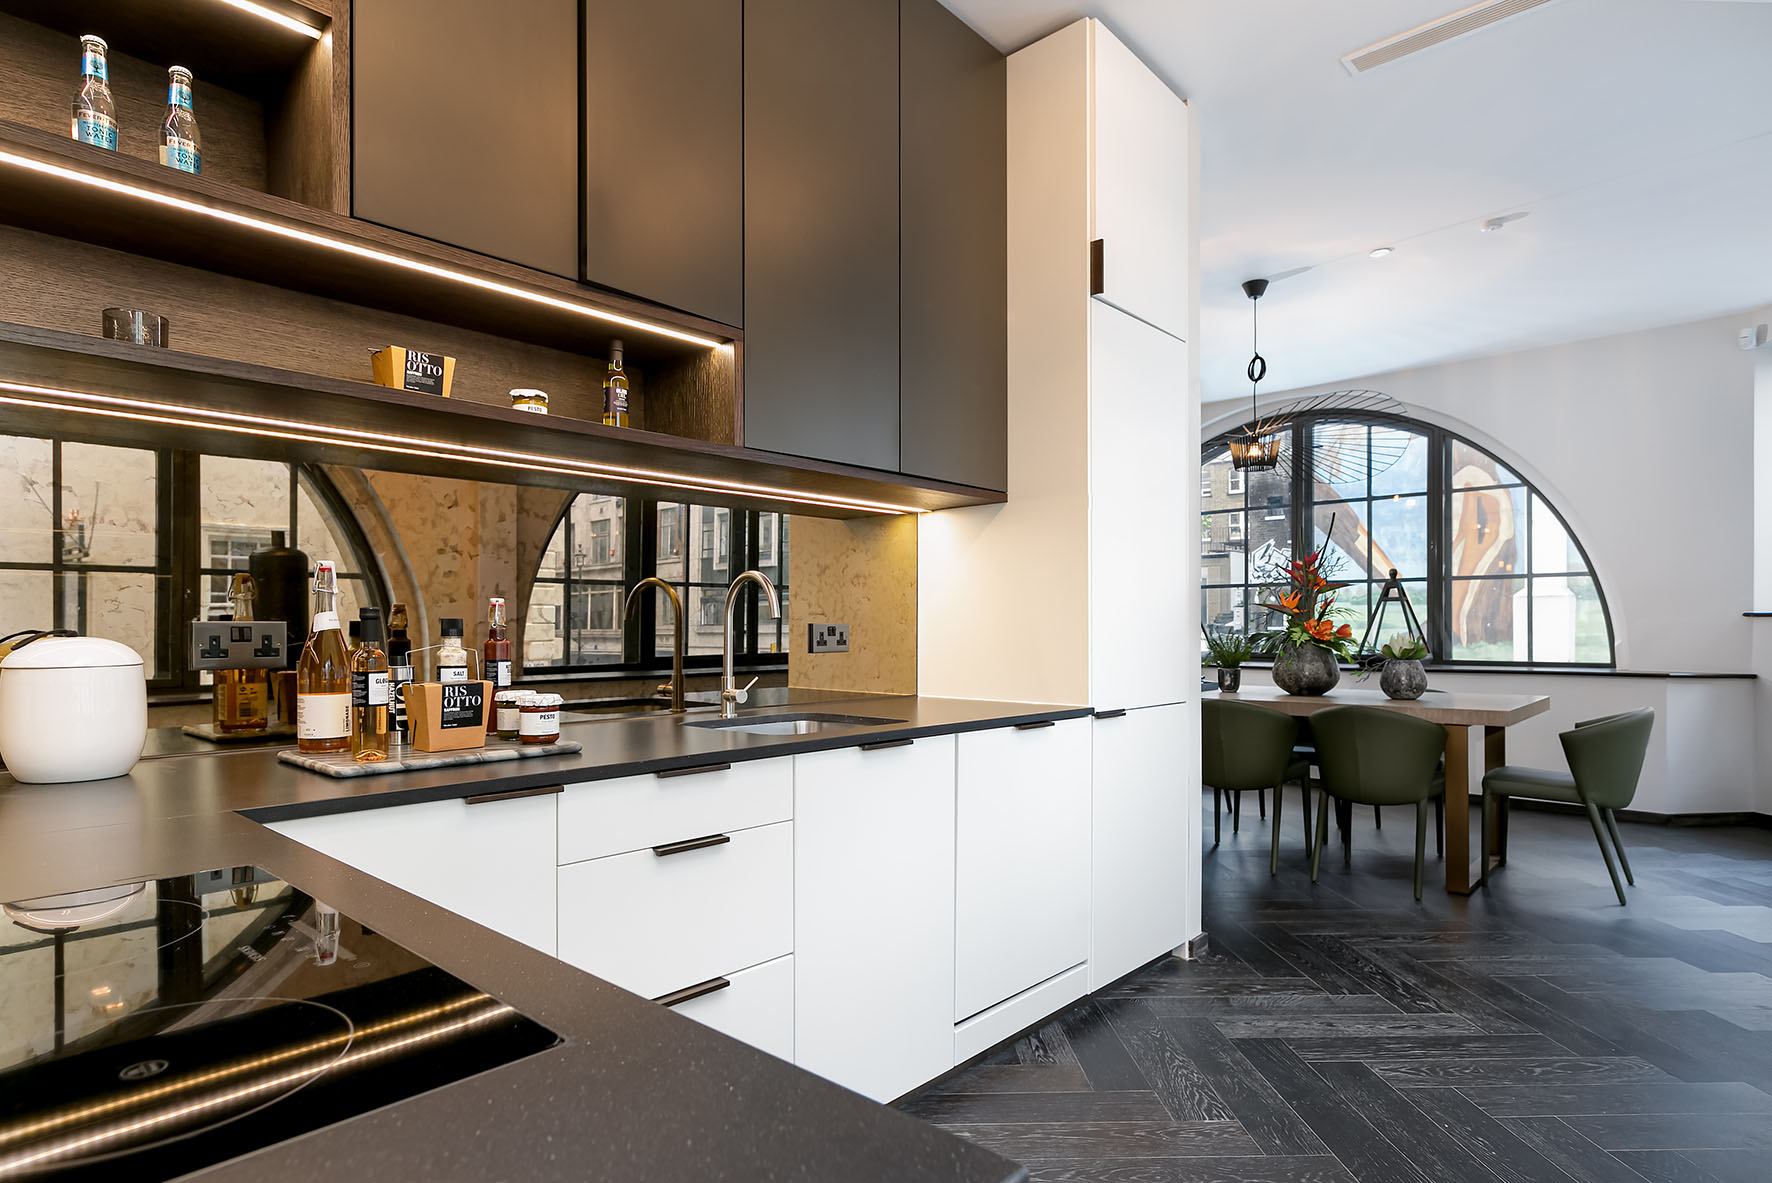 Lovelydays luxury service apartment rental - London - Soho - Berwick Street I - Lovelysuite - 3 bedrooms - 3 bathrooms - Luxury kitchen - 4c12496d2541 - Lovelydays